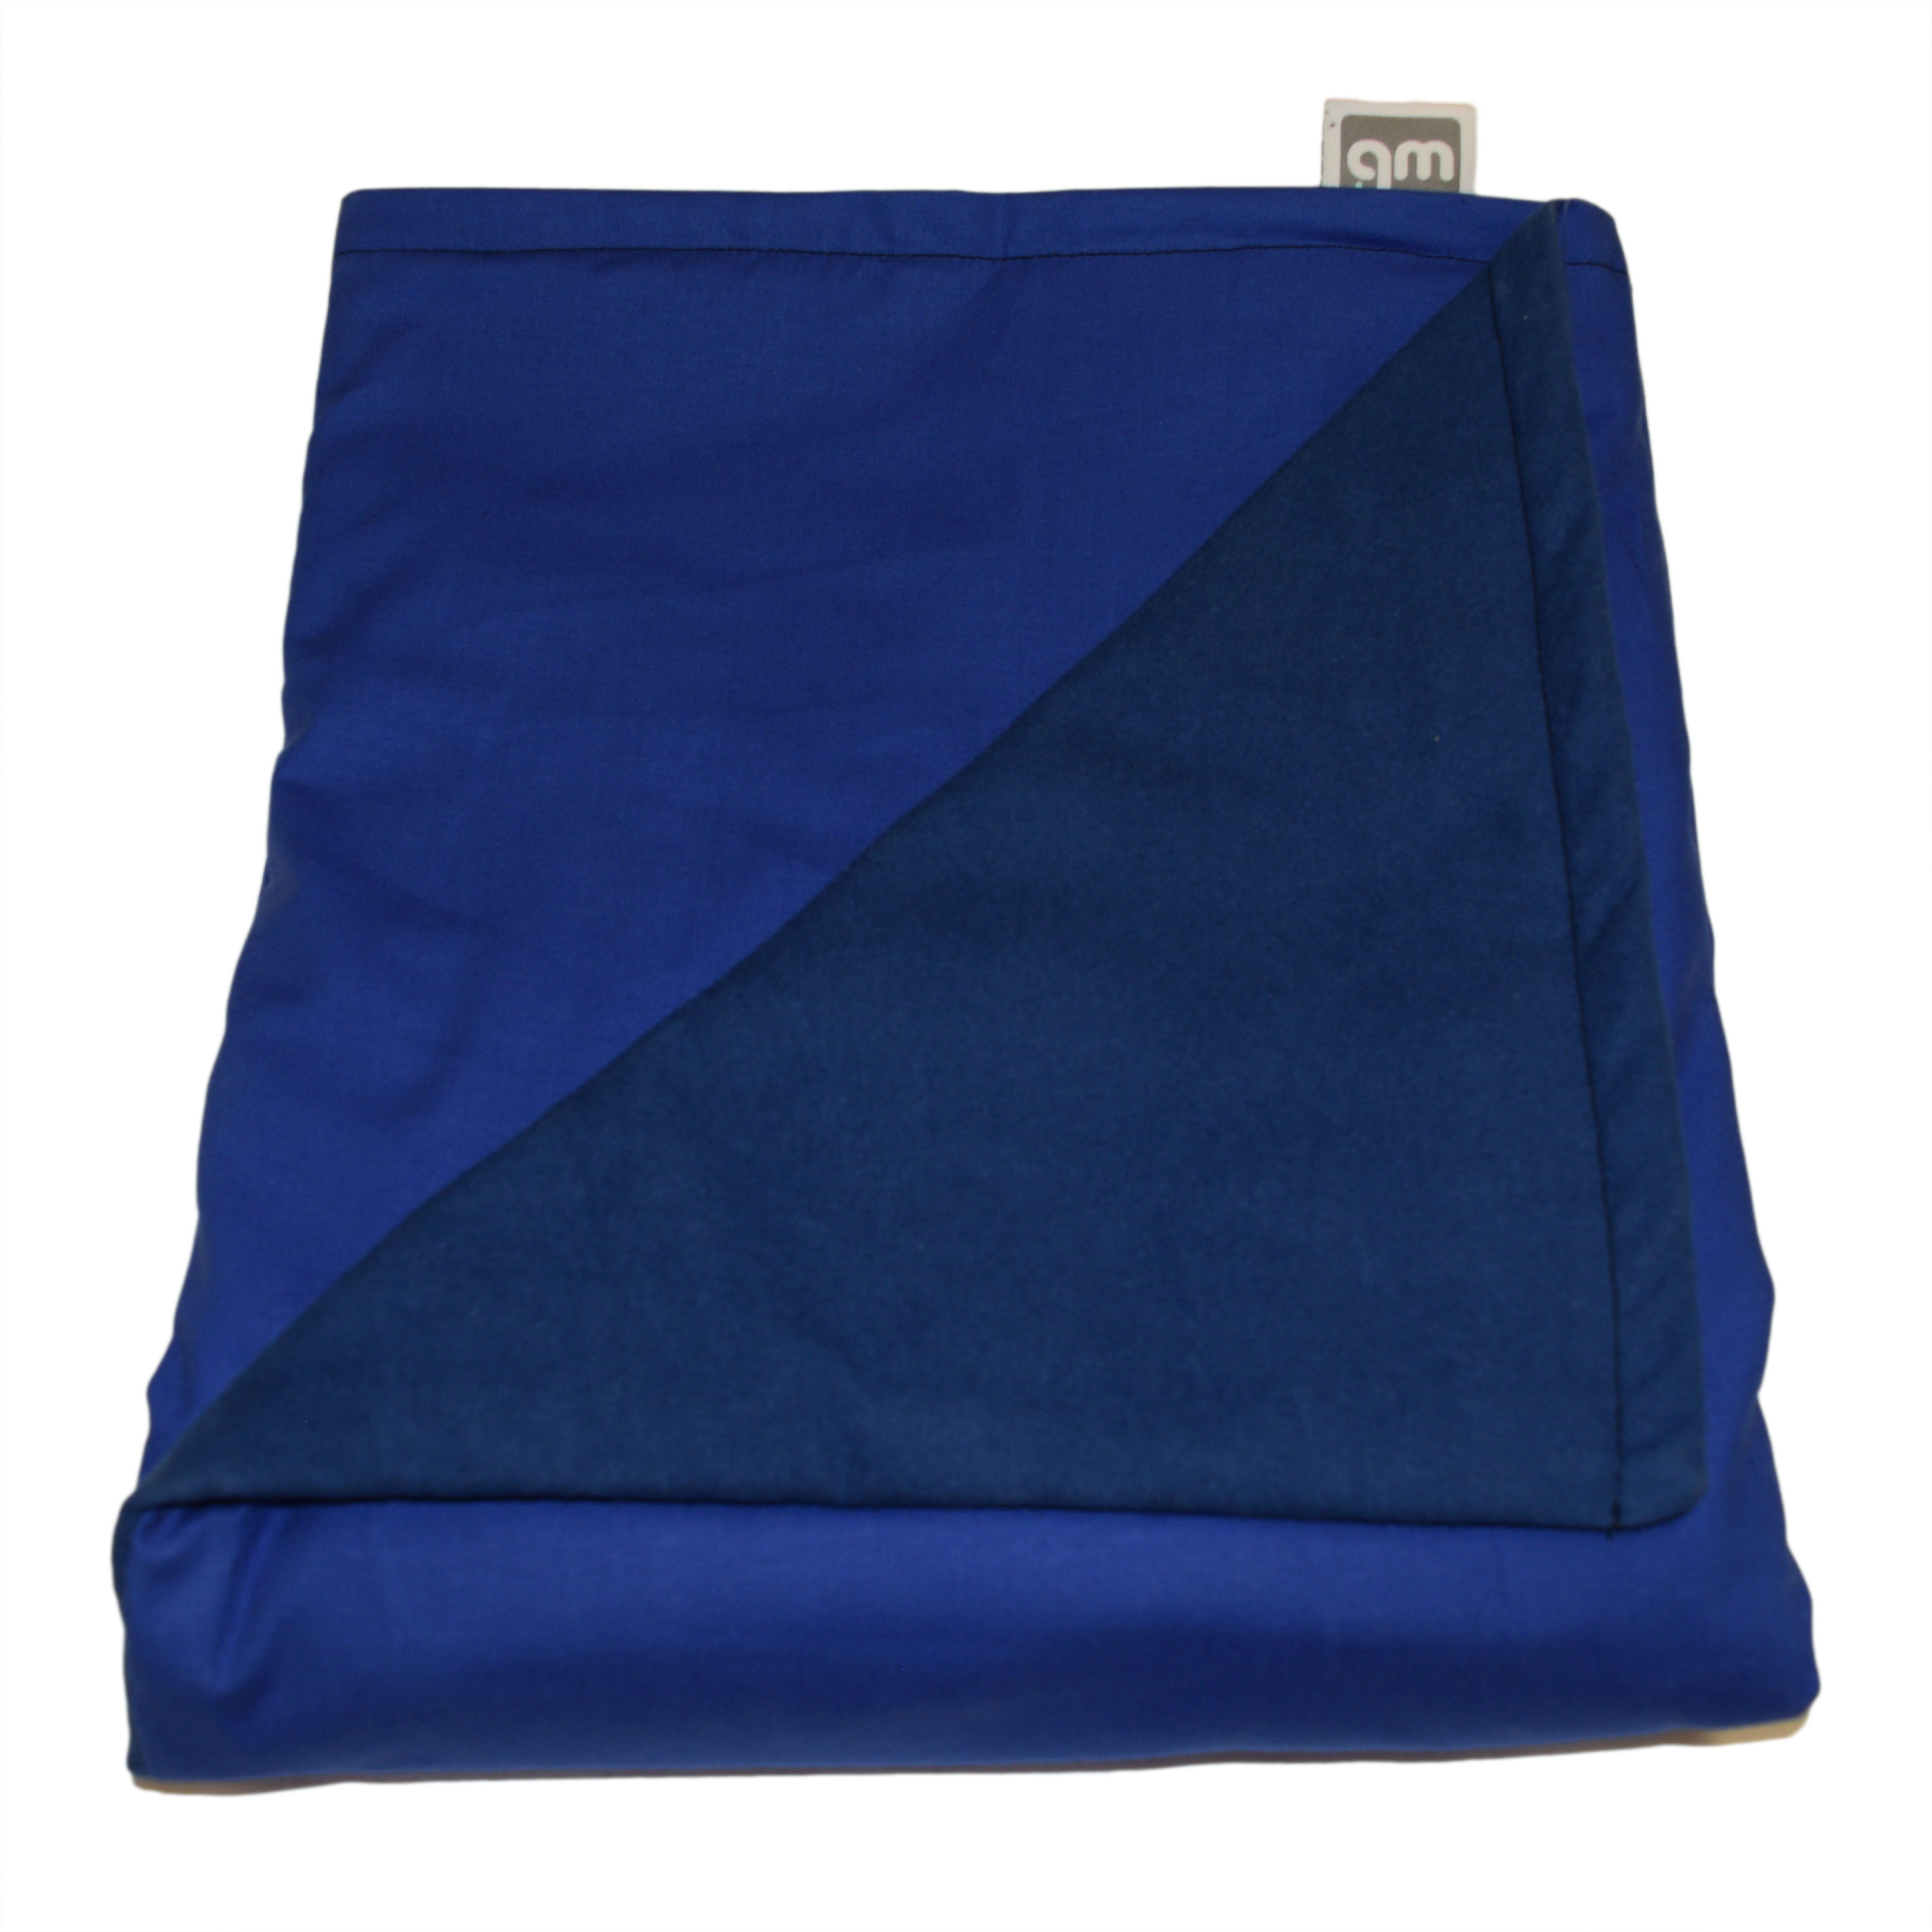 "WEIGHTED BLANKETS PLUS LLC CHILD SMALL WEIGHTED BLANKET BLUE COTTON FLANNEL (48""L x... by Weighted Blankets Plus"